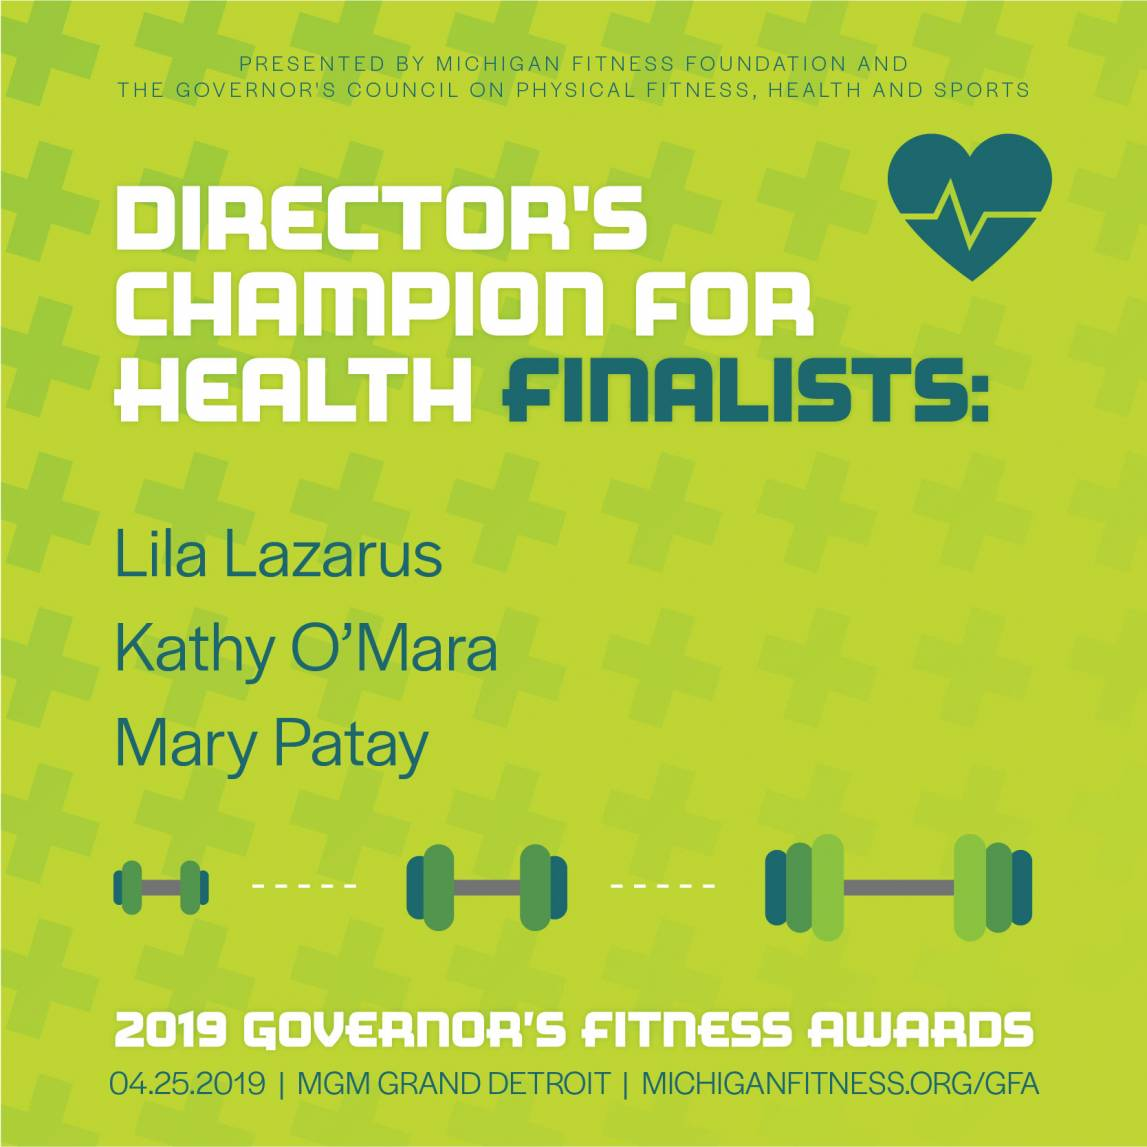 Governor's Fitness Awards - Director's Champion of Health